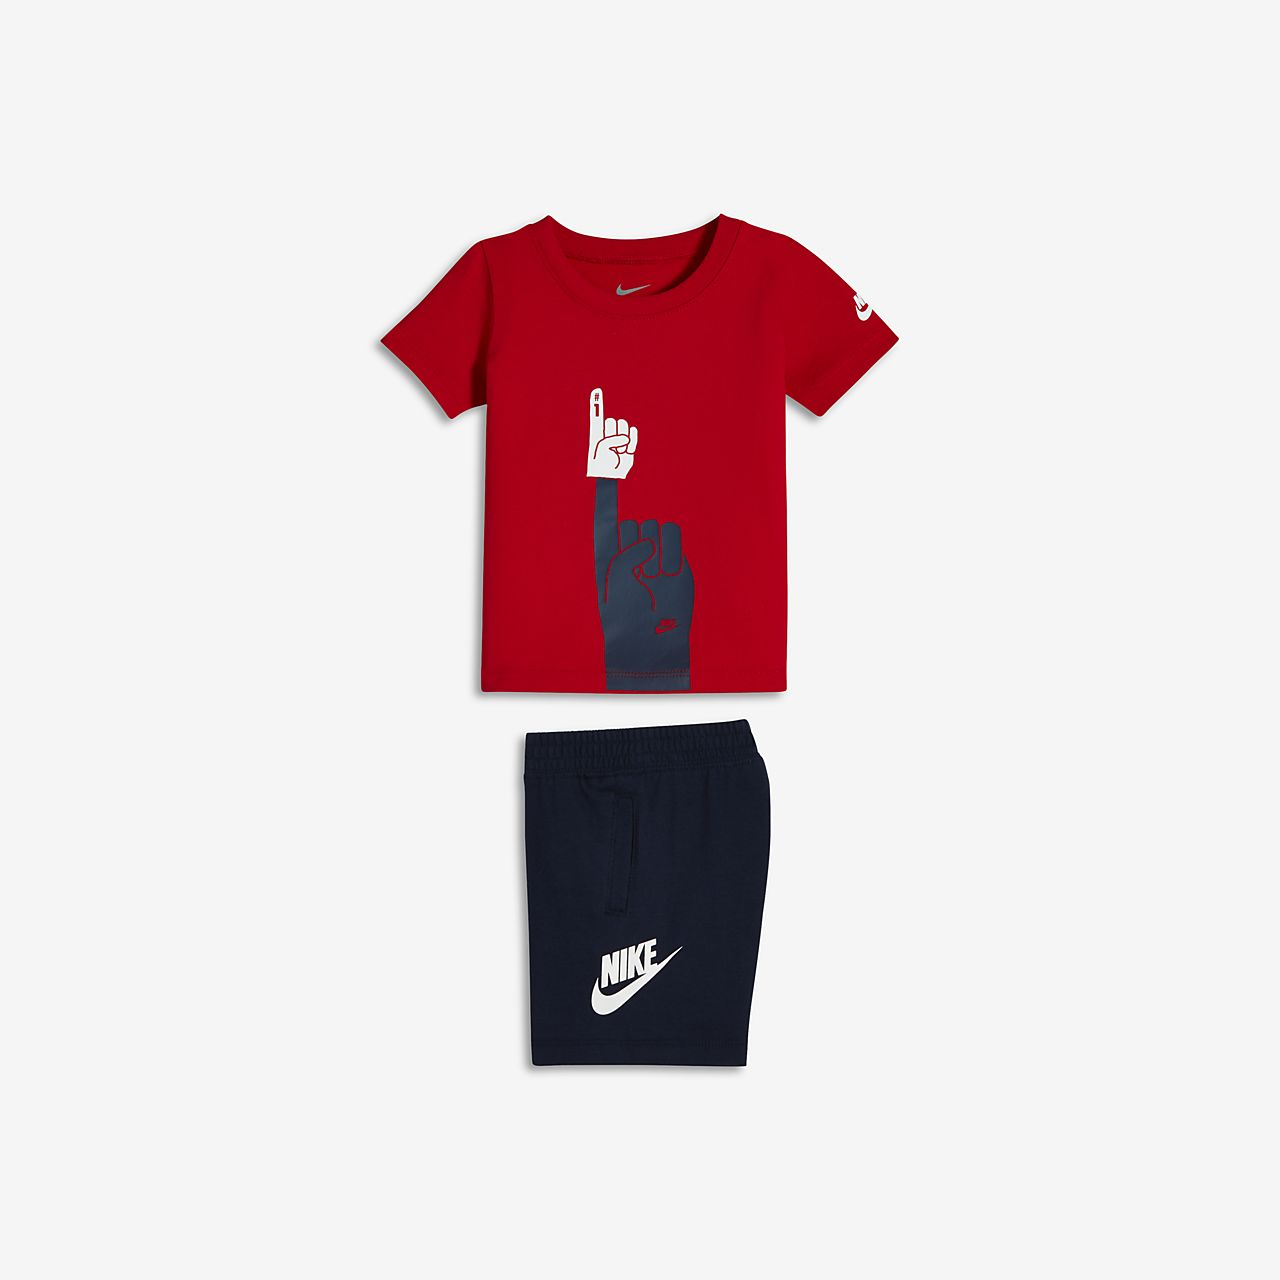 Nike Futura Foam Finger Two-Piece Infant/Toddler T-Shirt and Shorts